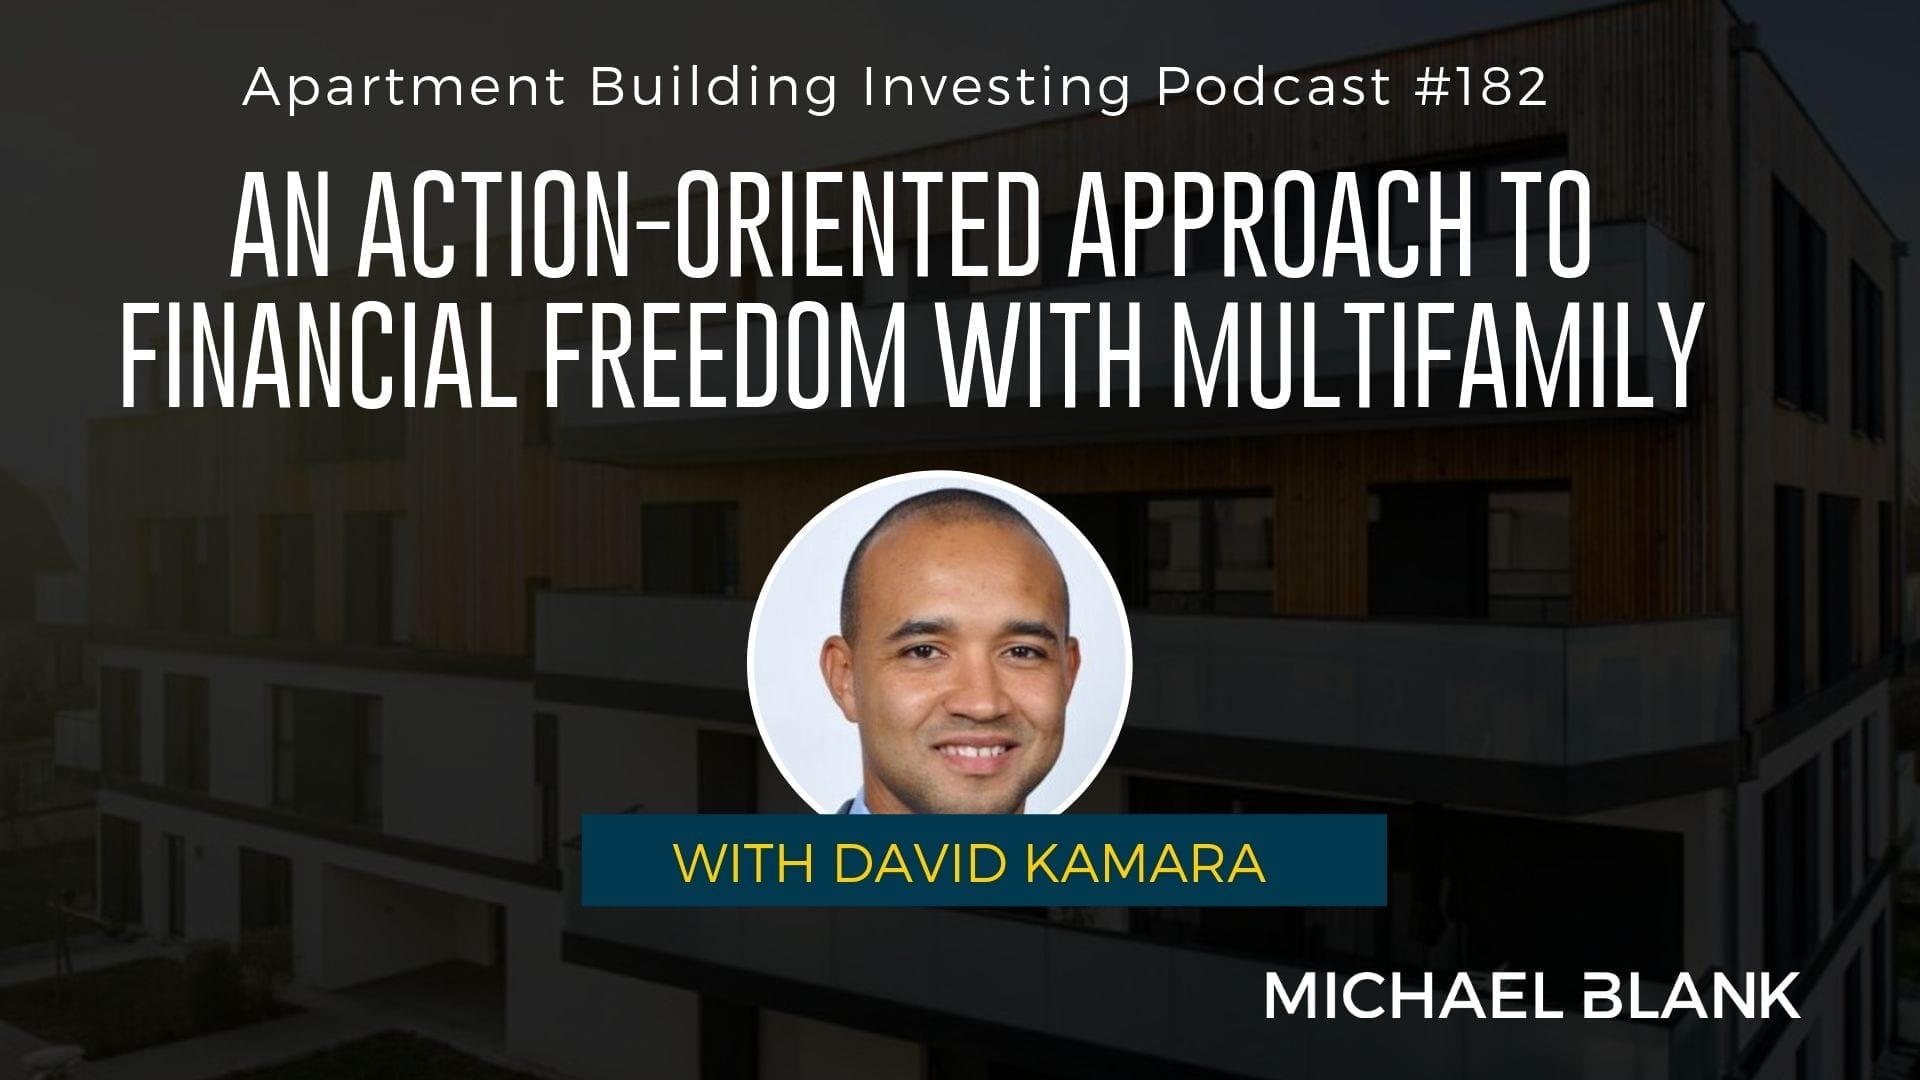 MB 182: An Action-Oriented Approach to Financial Freedom with Multifamily – With David Kamara